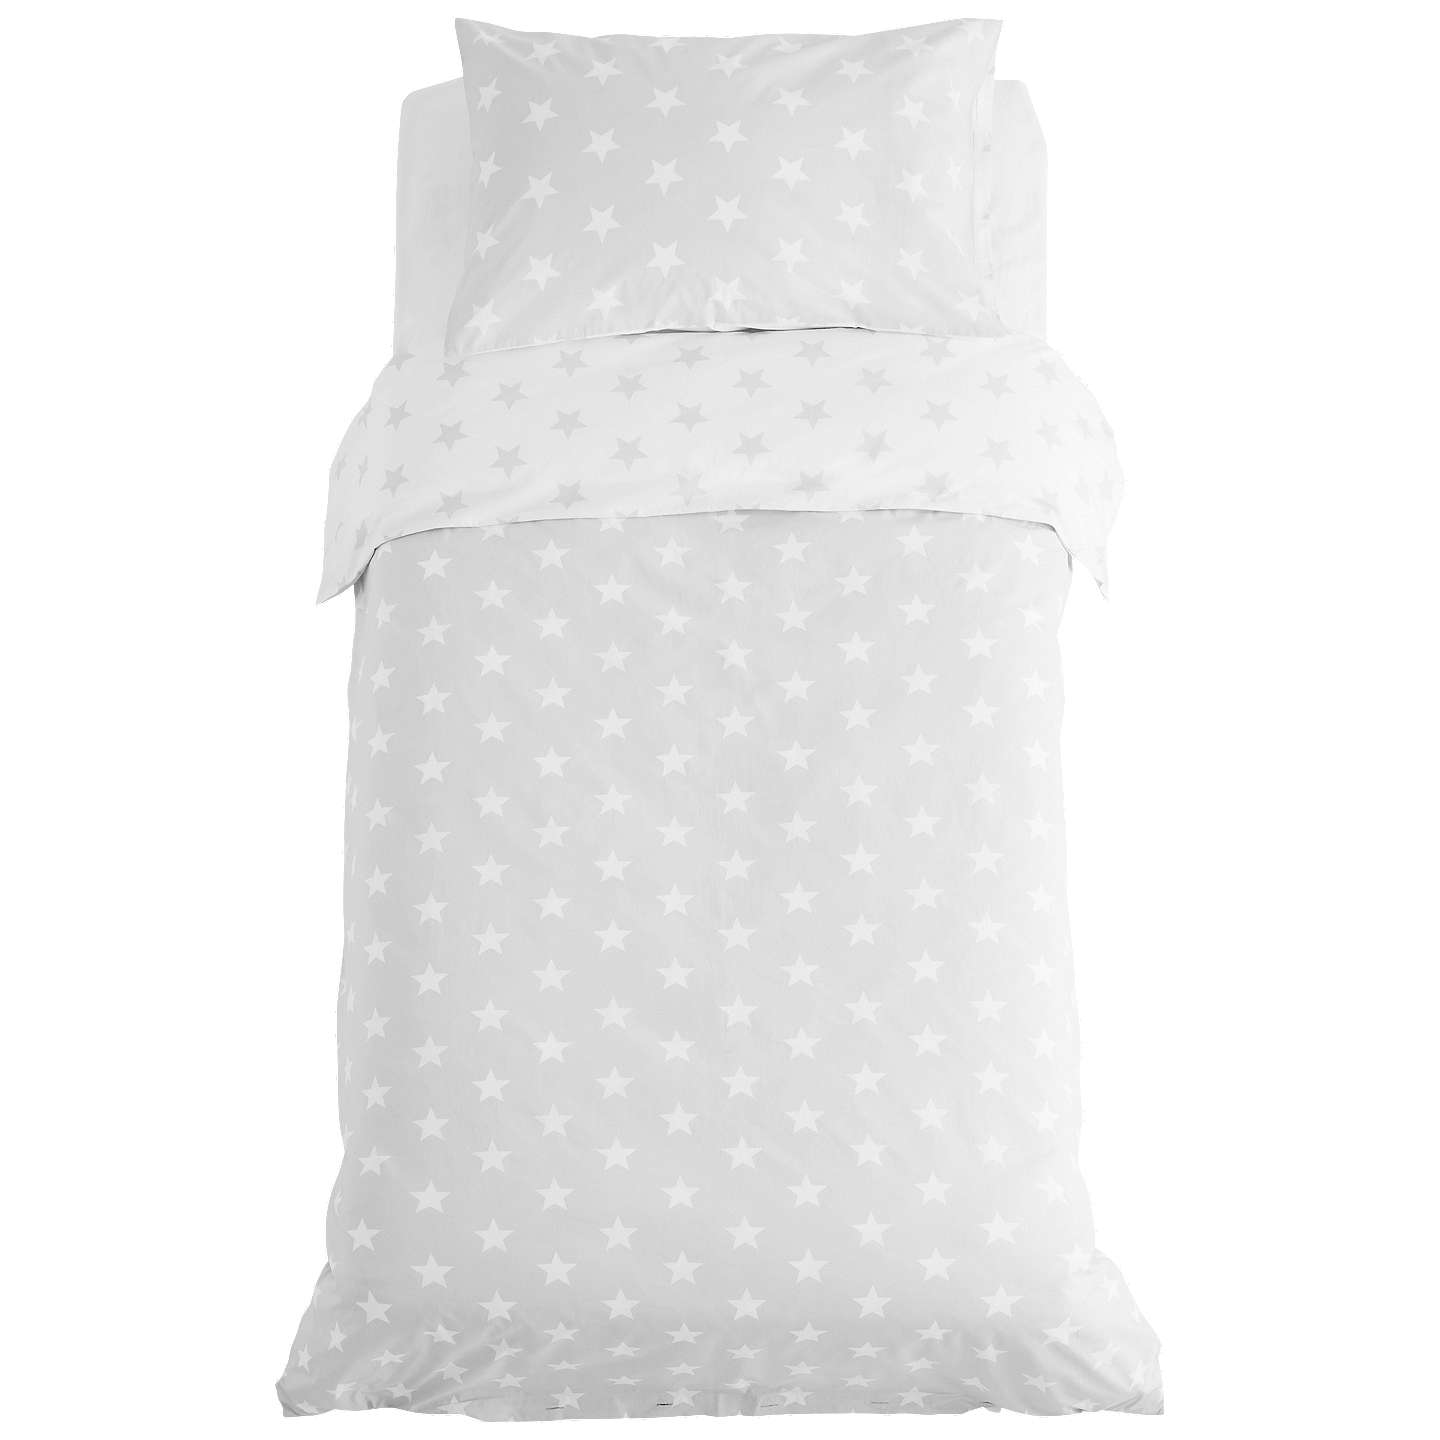 online at star rsp multi pillowcase stars lewis set pdp john buylittle single little and cover duvet main fbl home